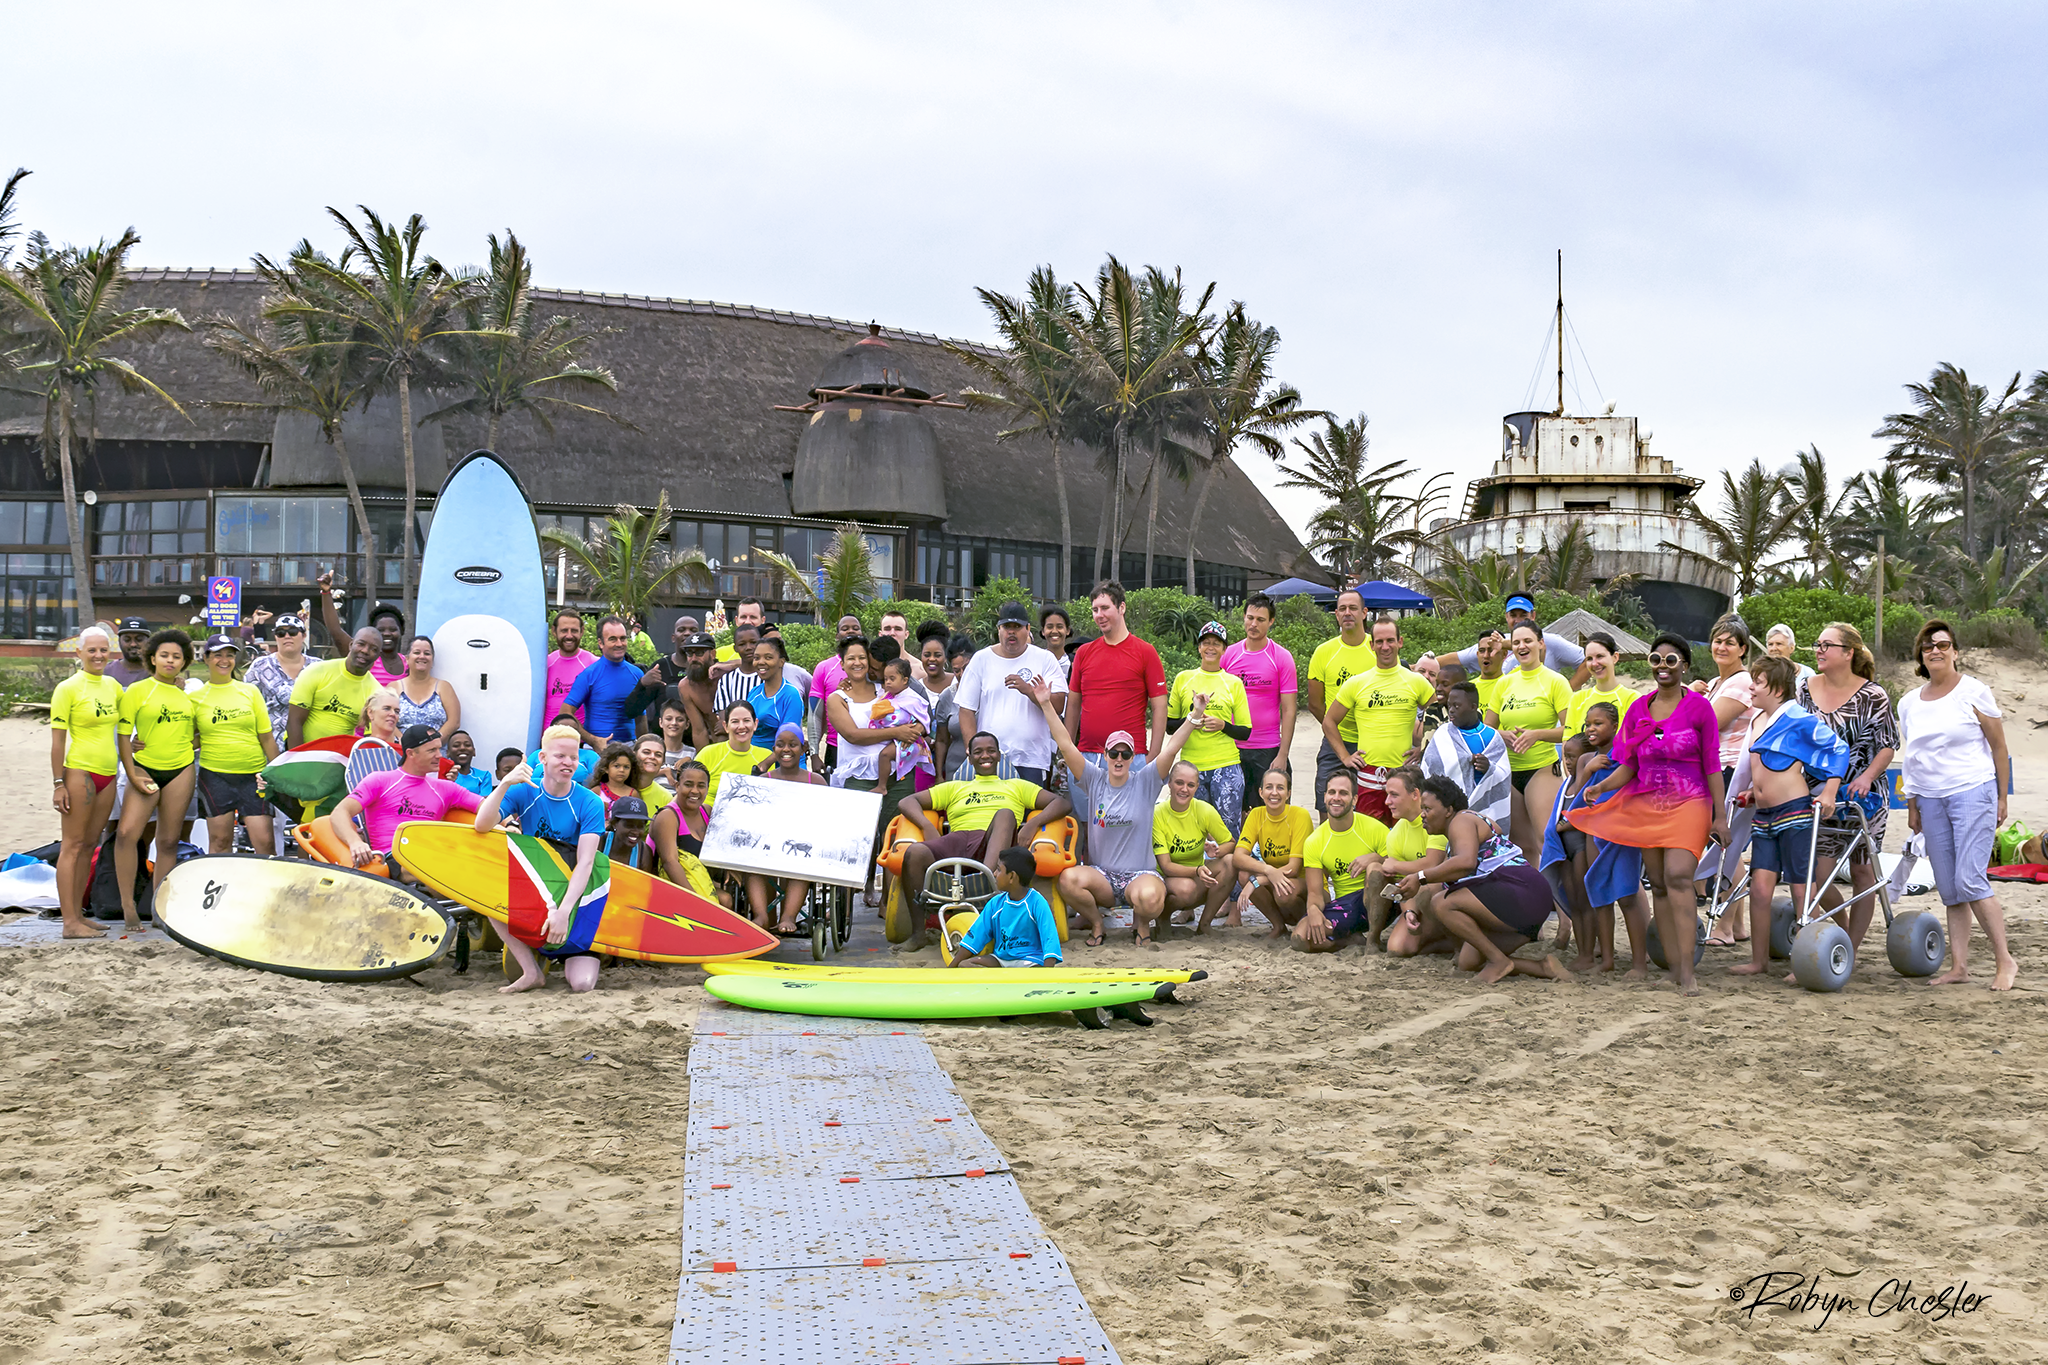 Help get the South African Para Surfing Team to the ISA World Para Surfing Championships in the USA